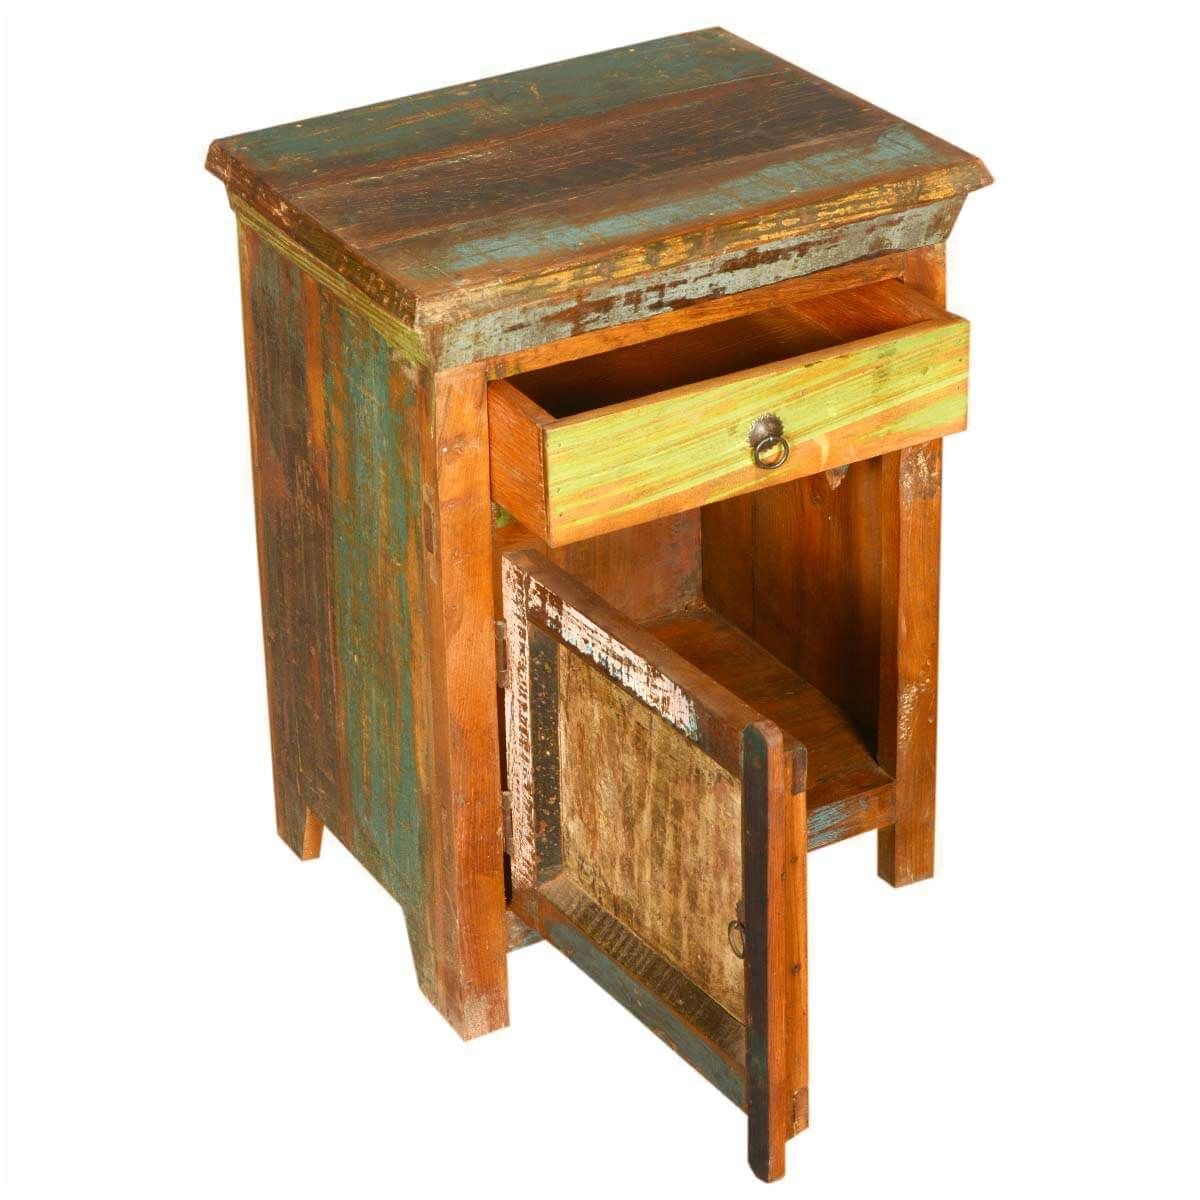 New Memories Rustic Reclaimed Wood Night Stand End Table